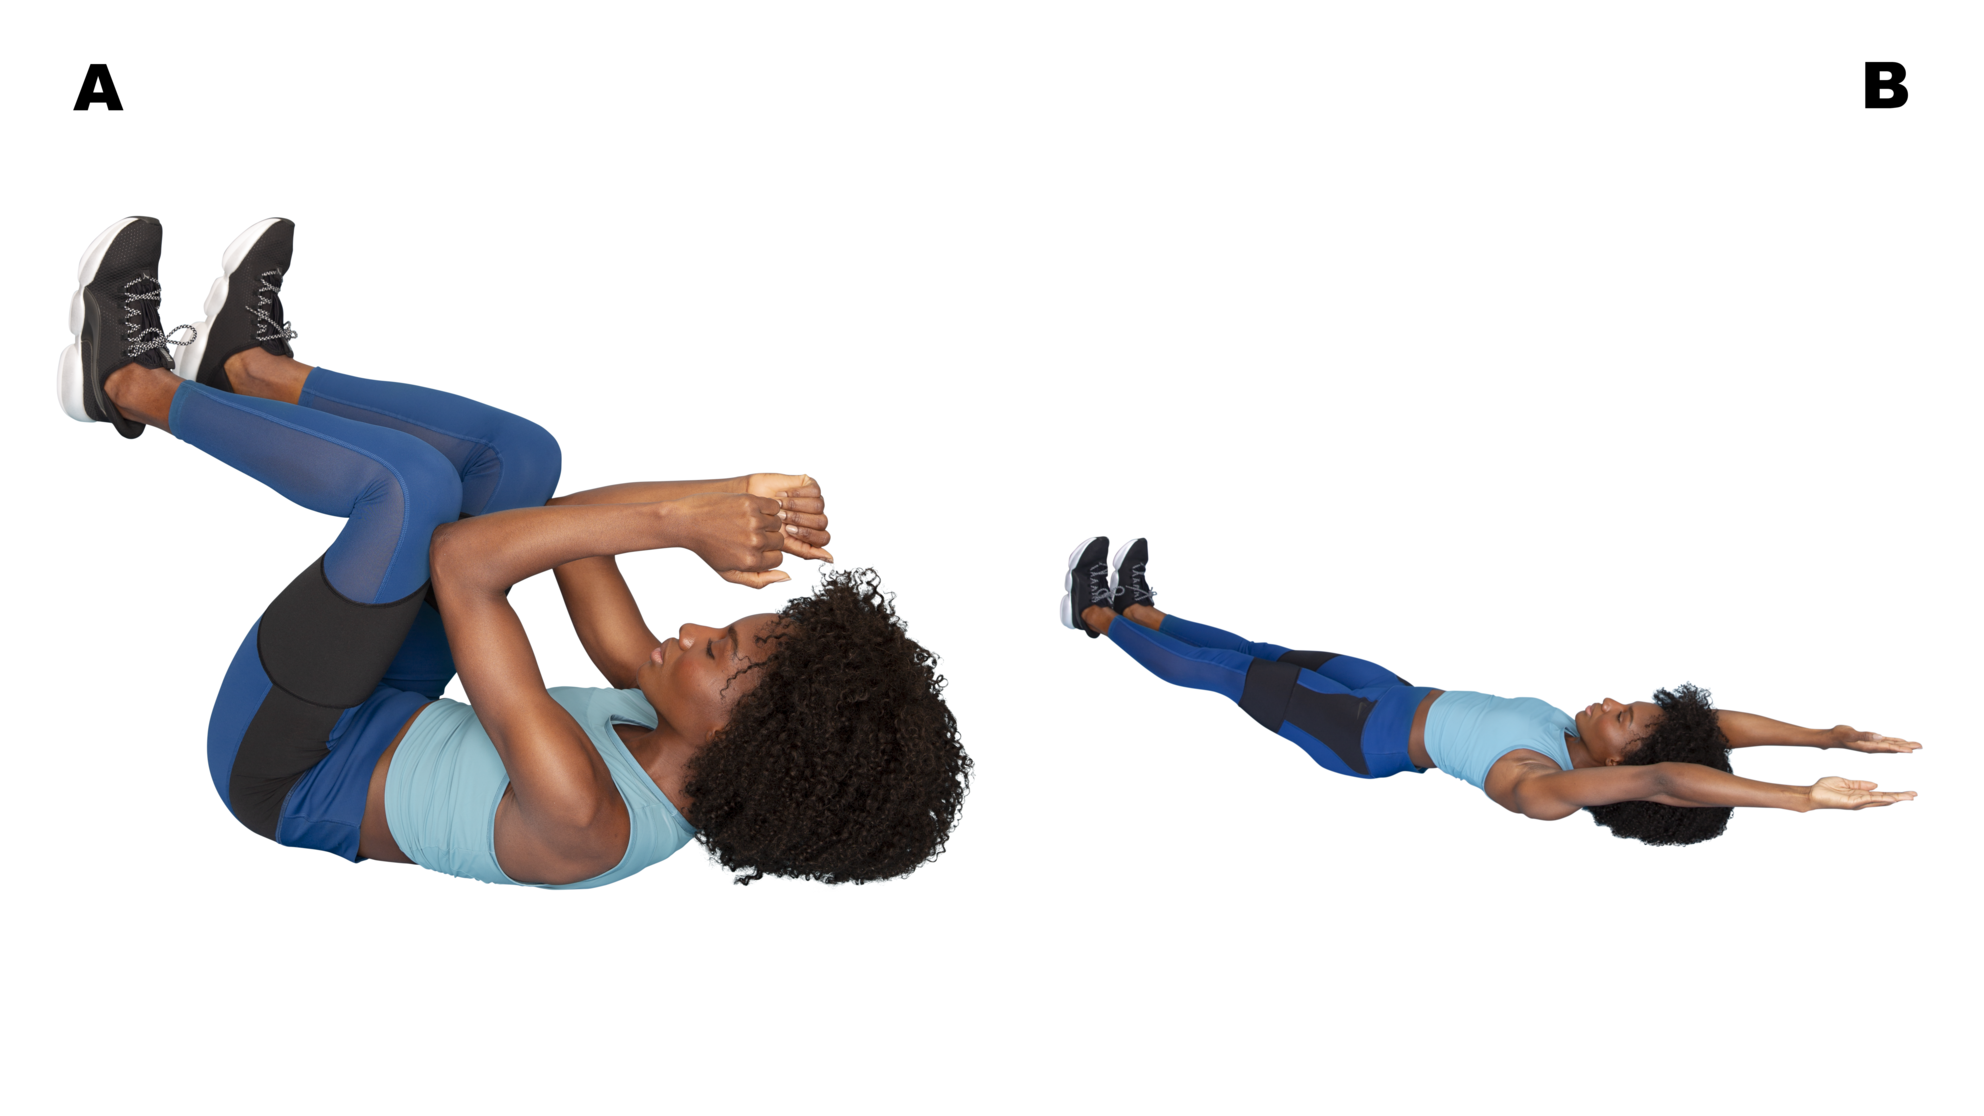 INTERVAL 6 SUPINE CORE EXTENSIONS